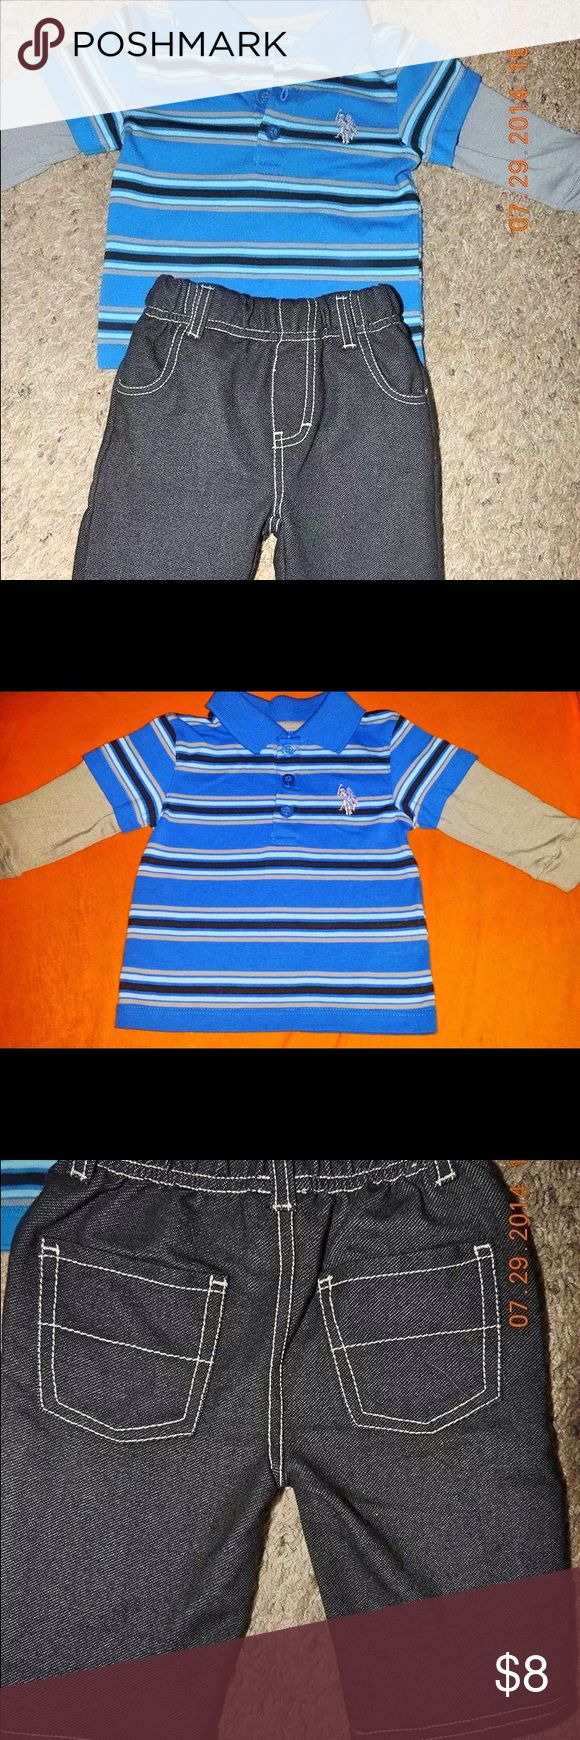 US Polo Association Baby Outfit NWOT Polo outfit with a collared long sleeved t- shirt with 3 buttons and a pair of black matching pants. This outfit has never been worn and has no defects. U.S. Polo Assn. Matching Sets